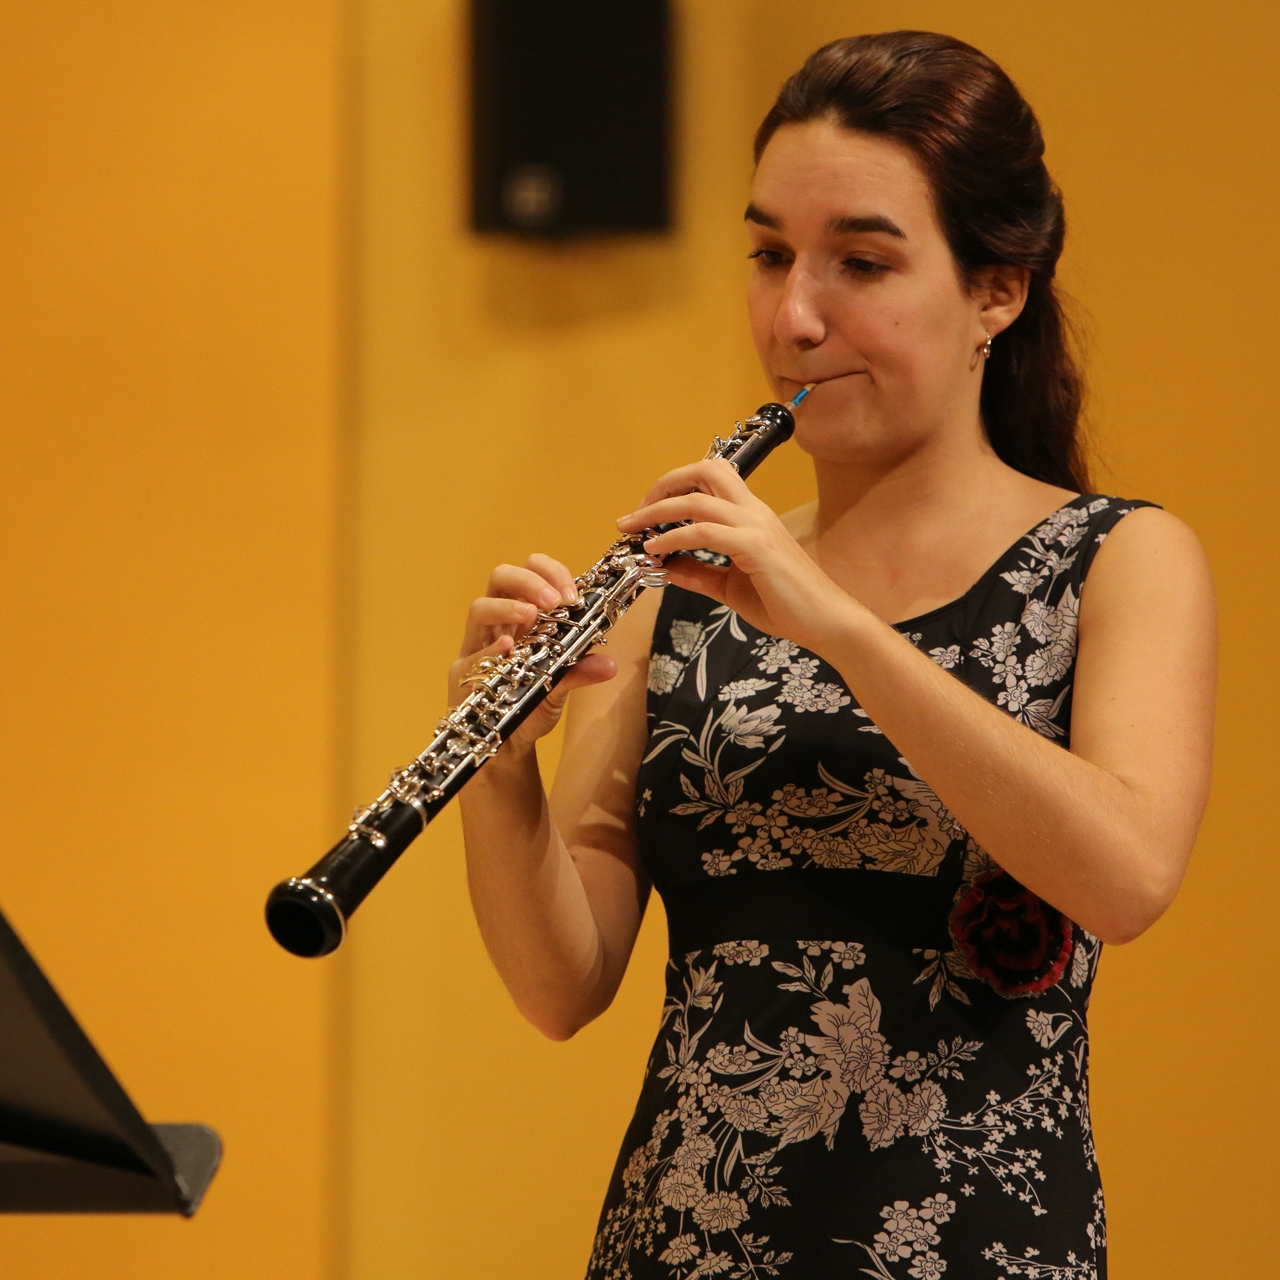 Photo of Élise Poulin during a concert. Credit: Charles-Antoine Solis